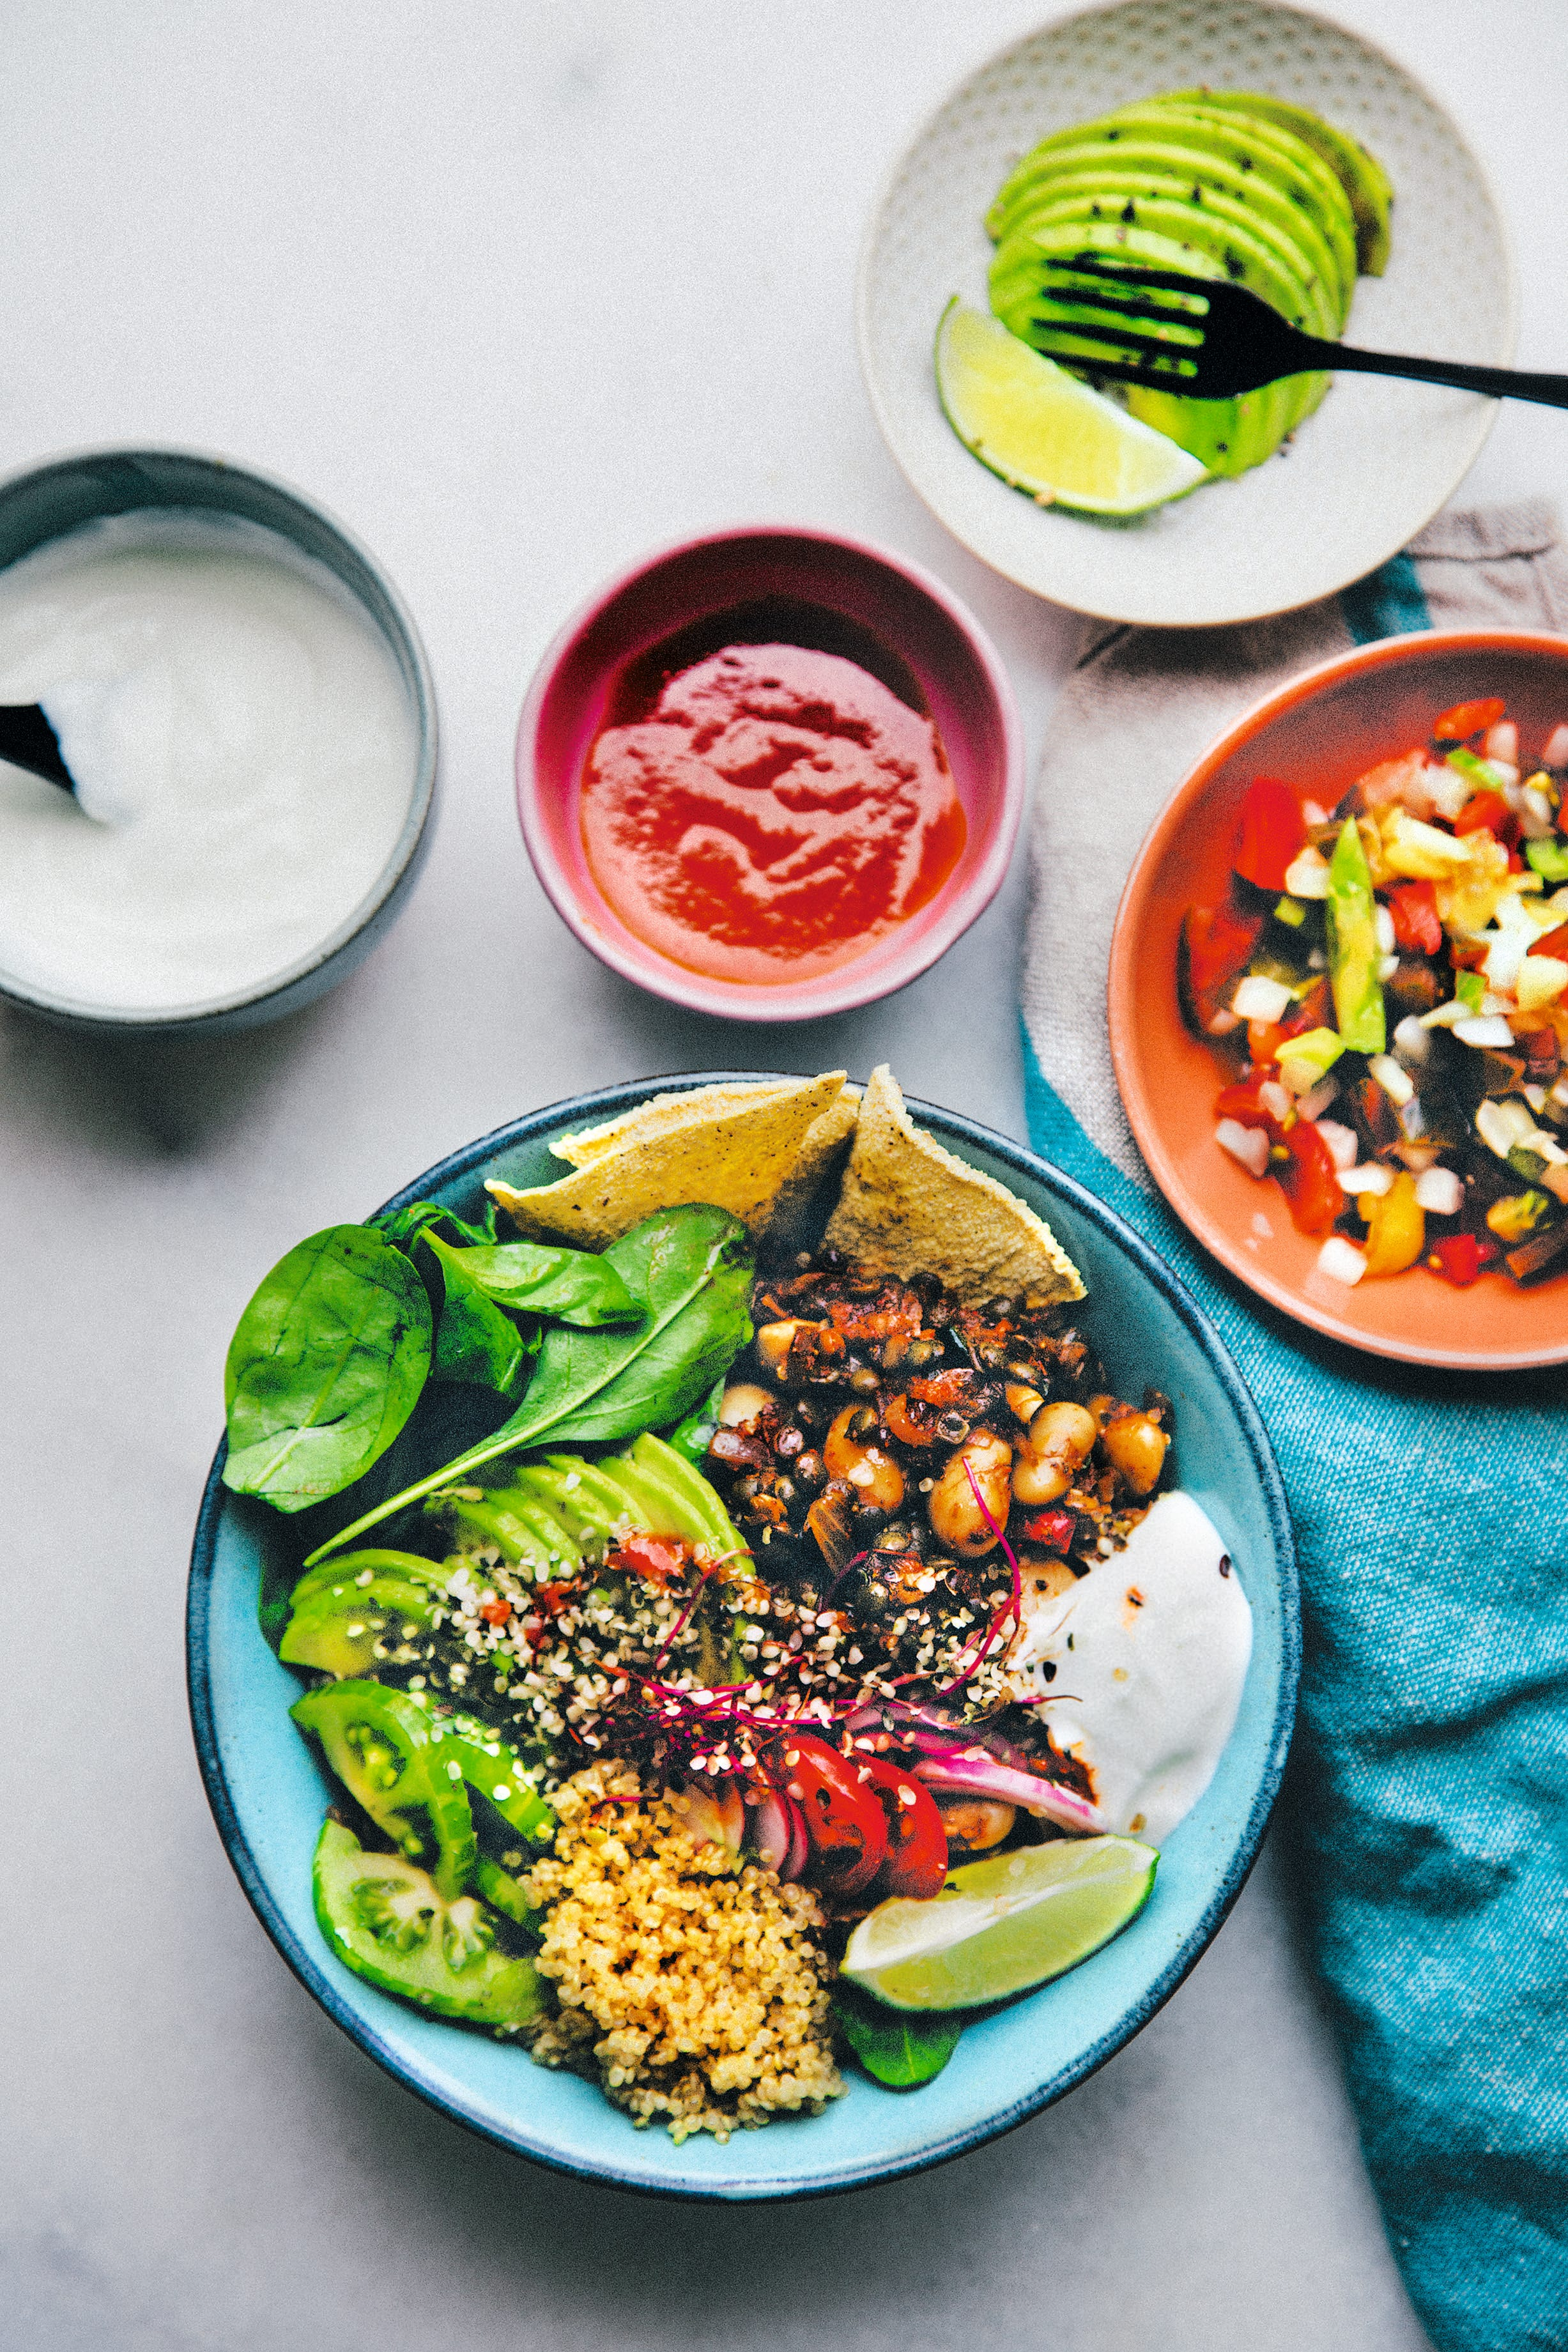 Make Healthy Comfort Food Magic With These 3 Easy Bowl Recipes